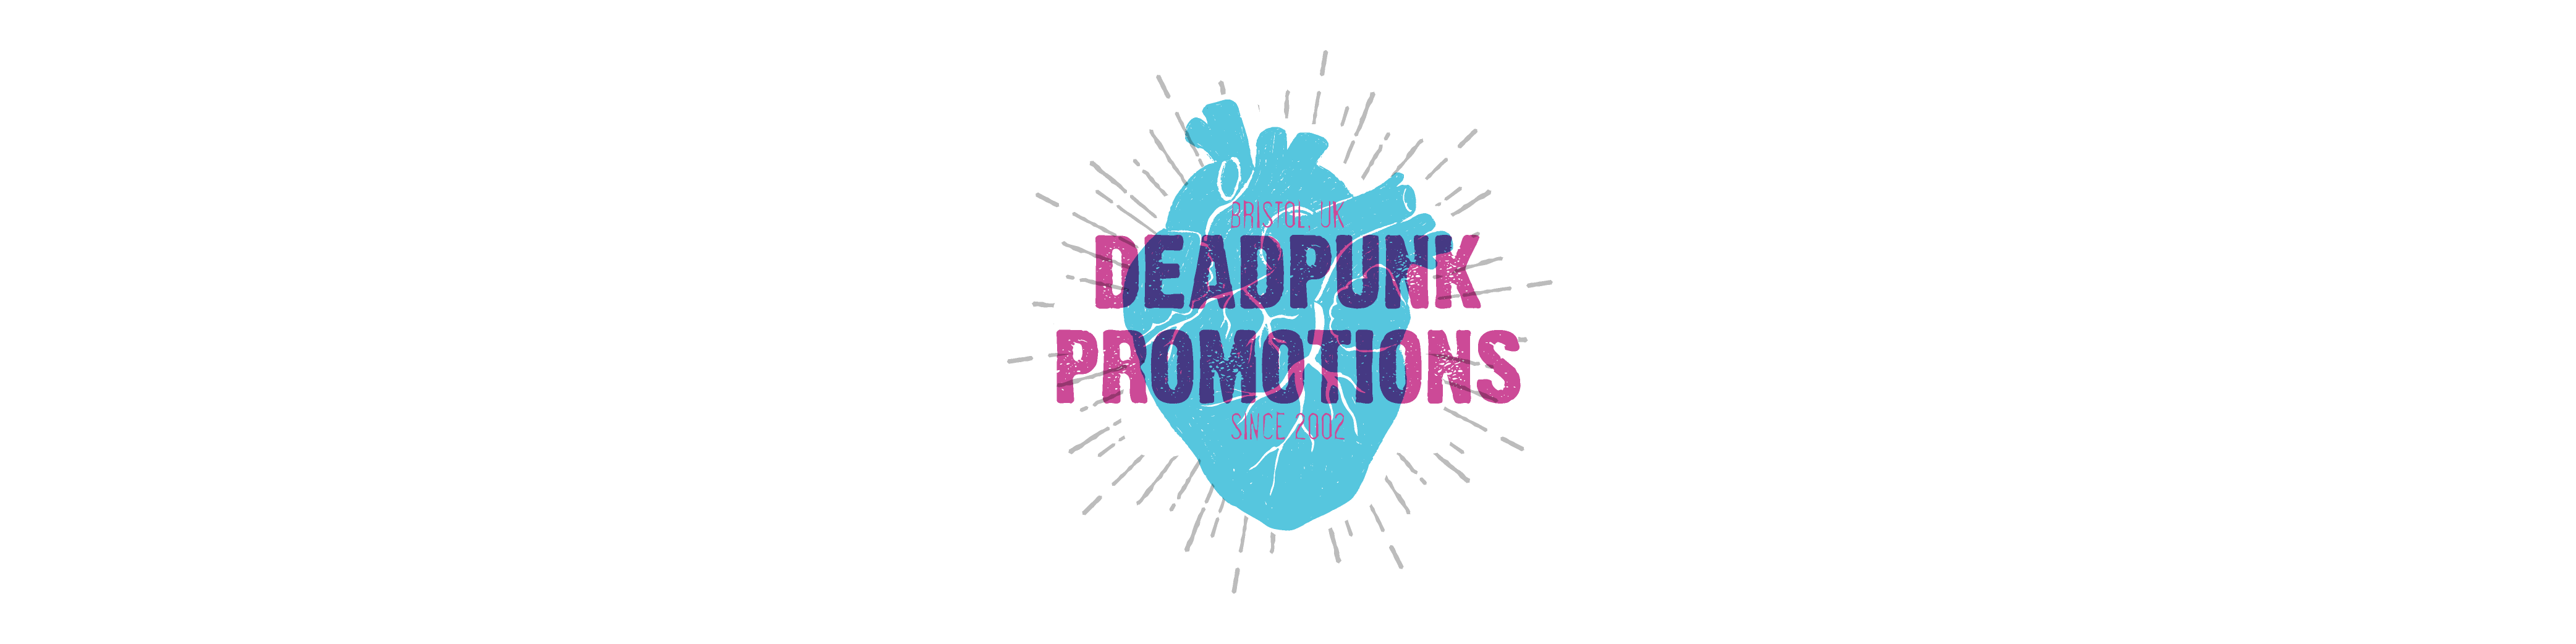 Deadpunk Promotions